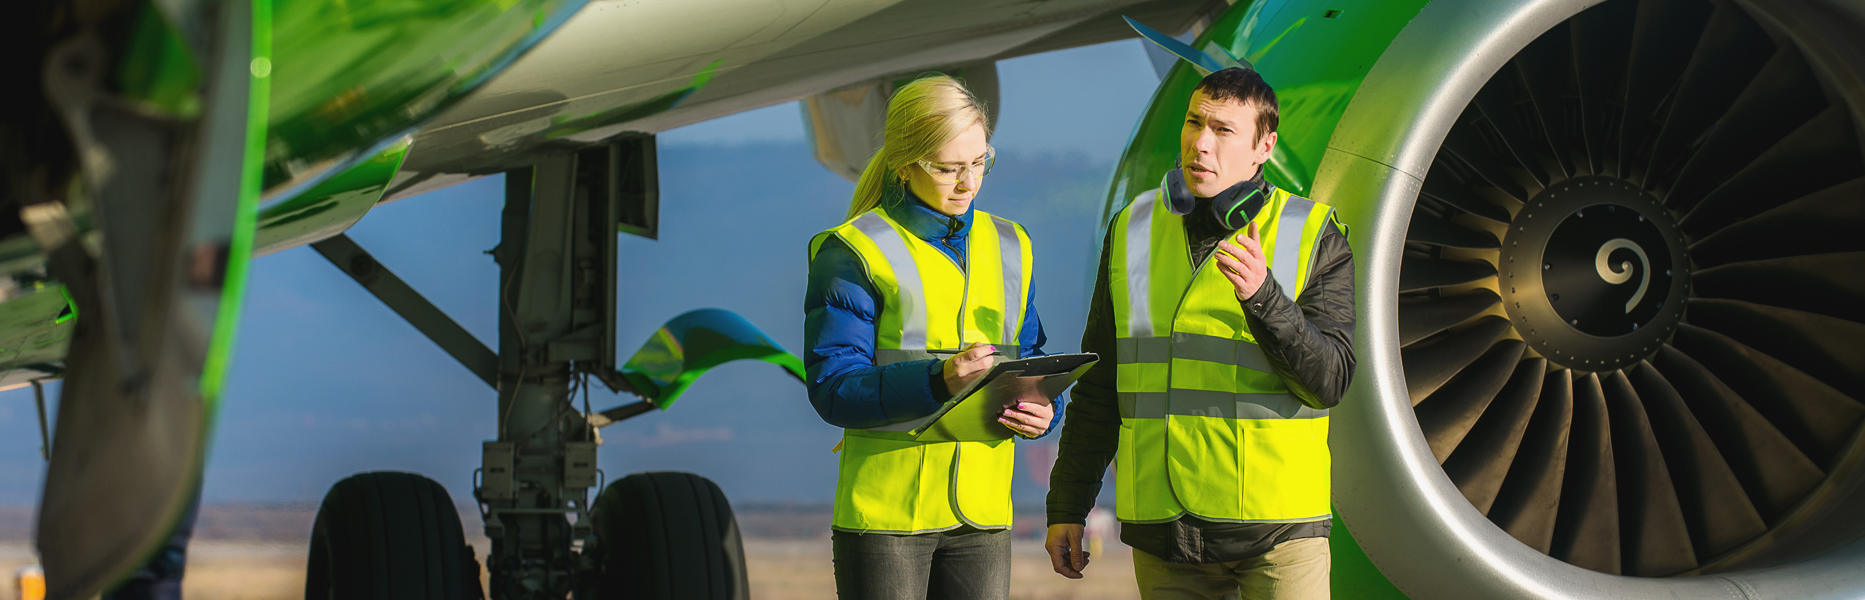 Airport Ground Services Safety Equipment and PPE